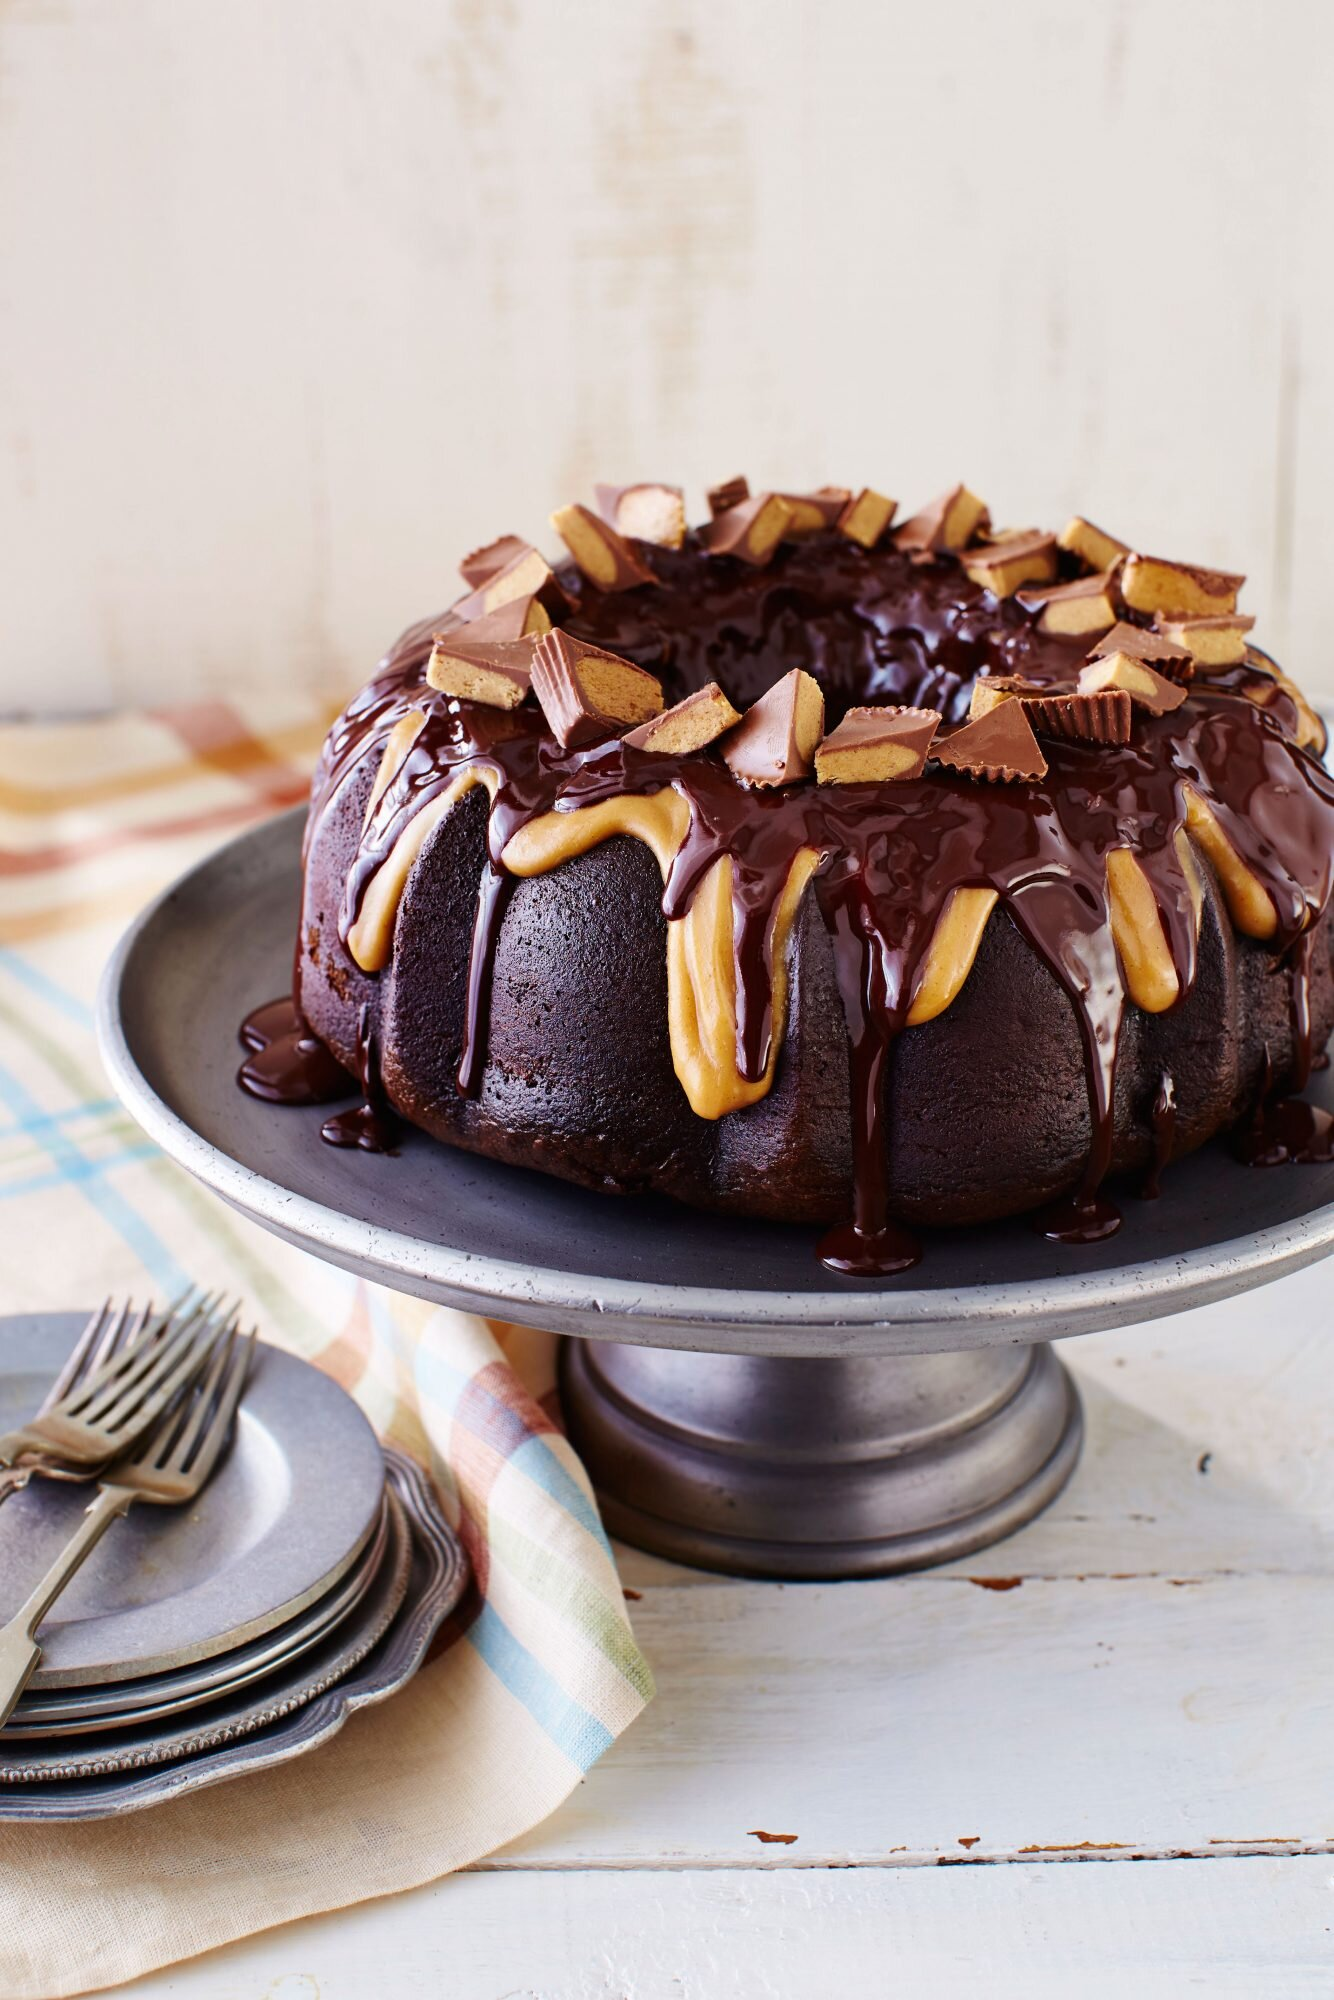 100 All Time Best Chocolate Desserts For Every Occasion Southern Living